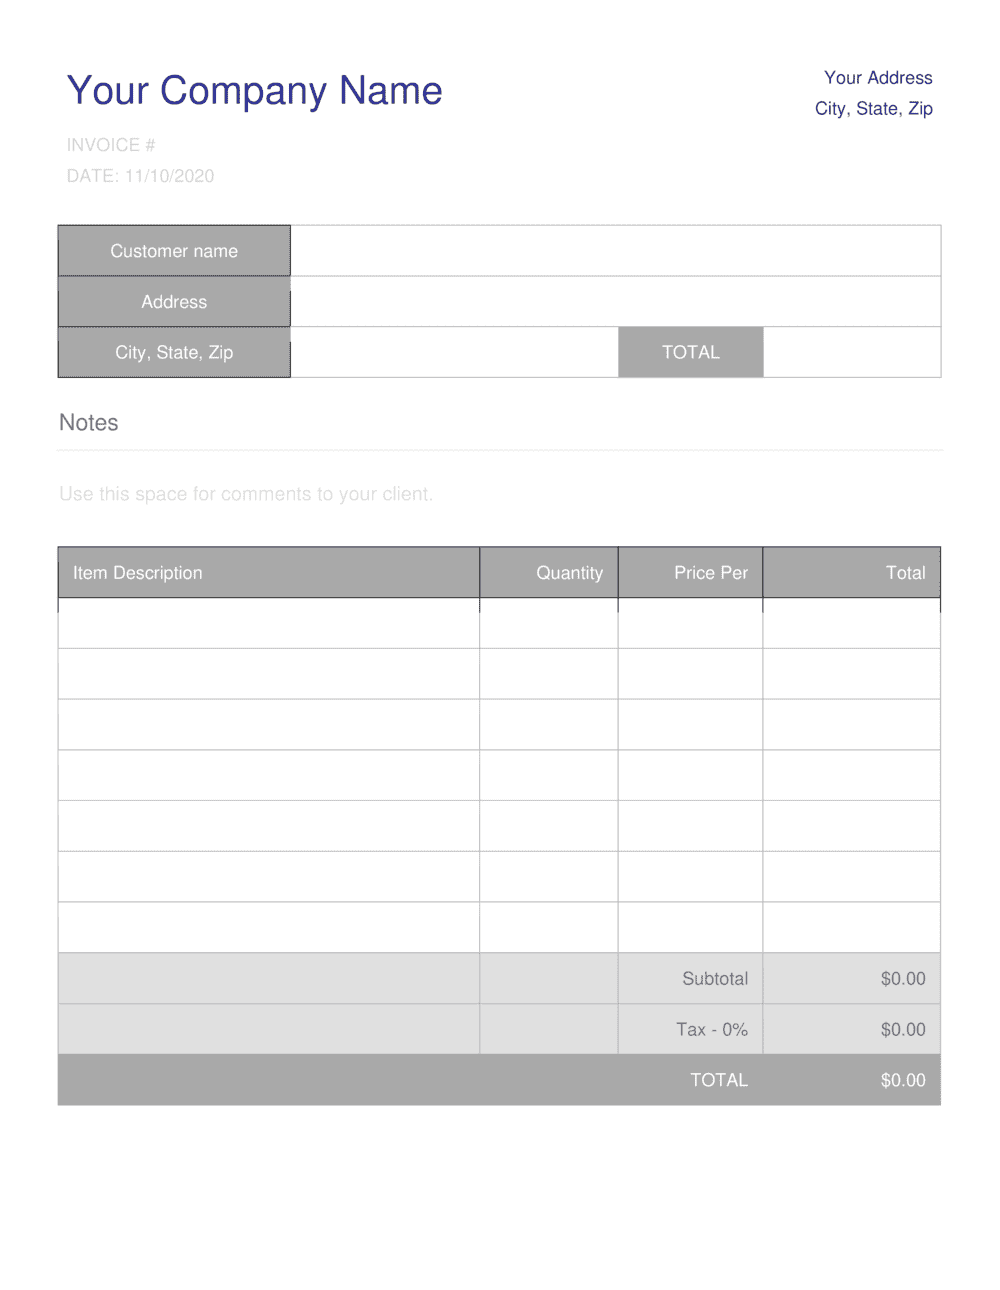 Business-in-a-Box's Invoice Template